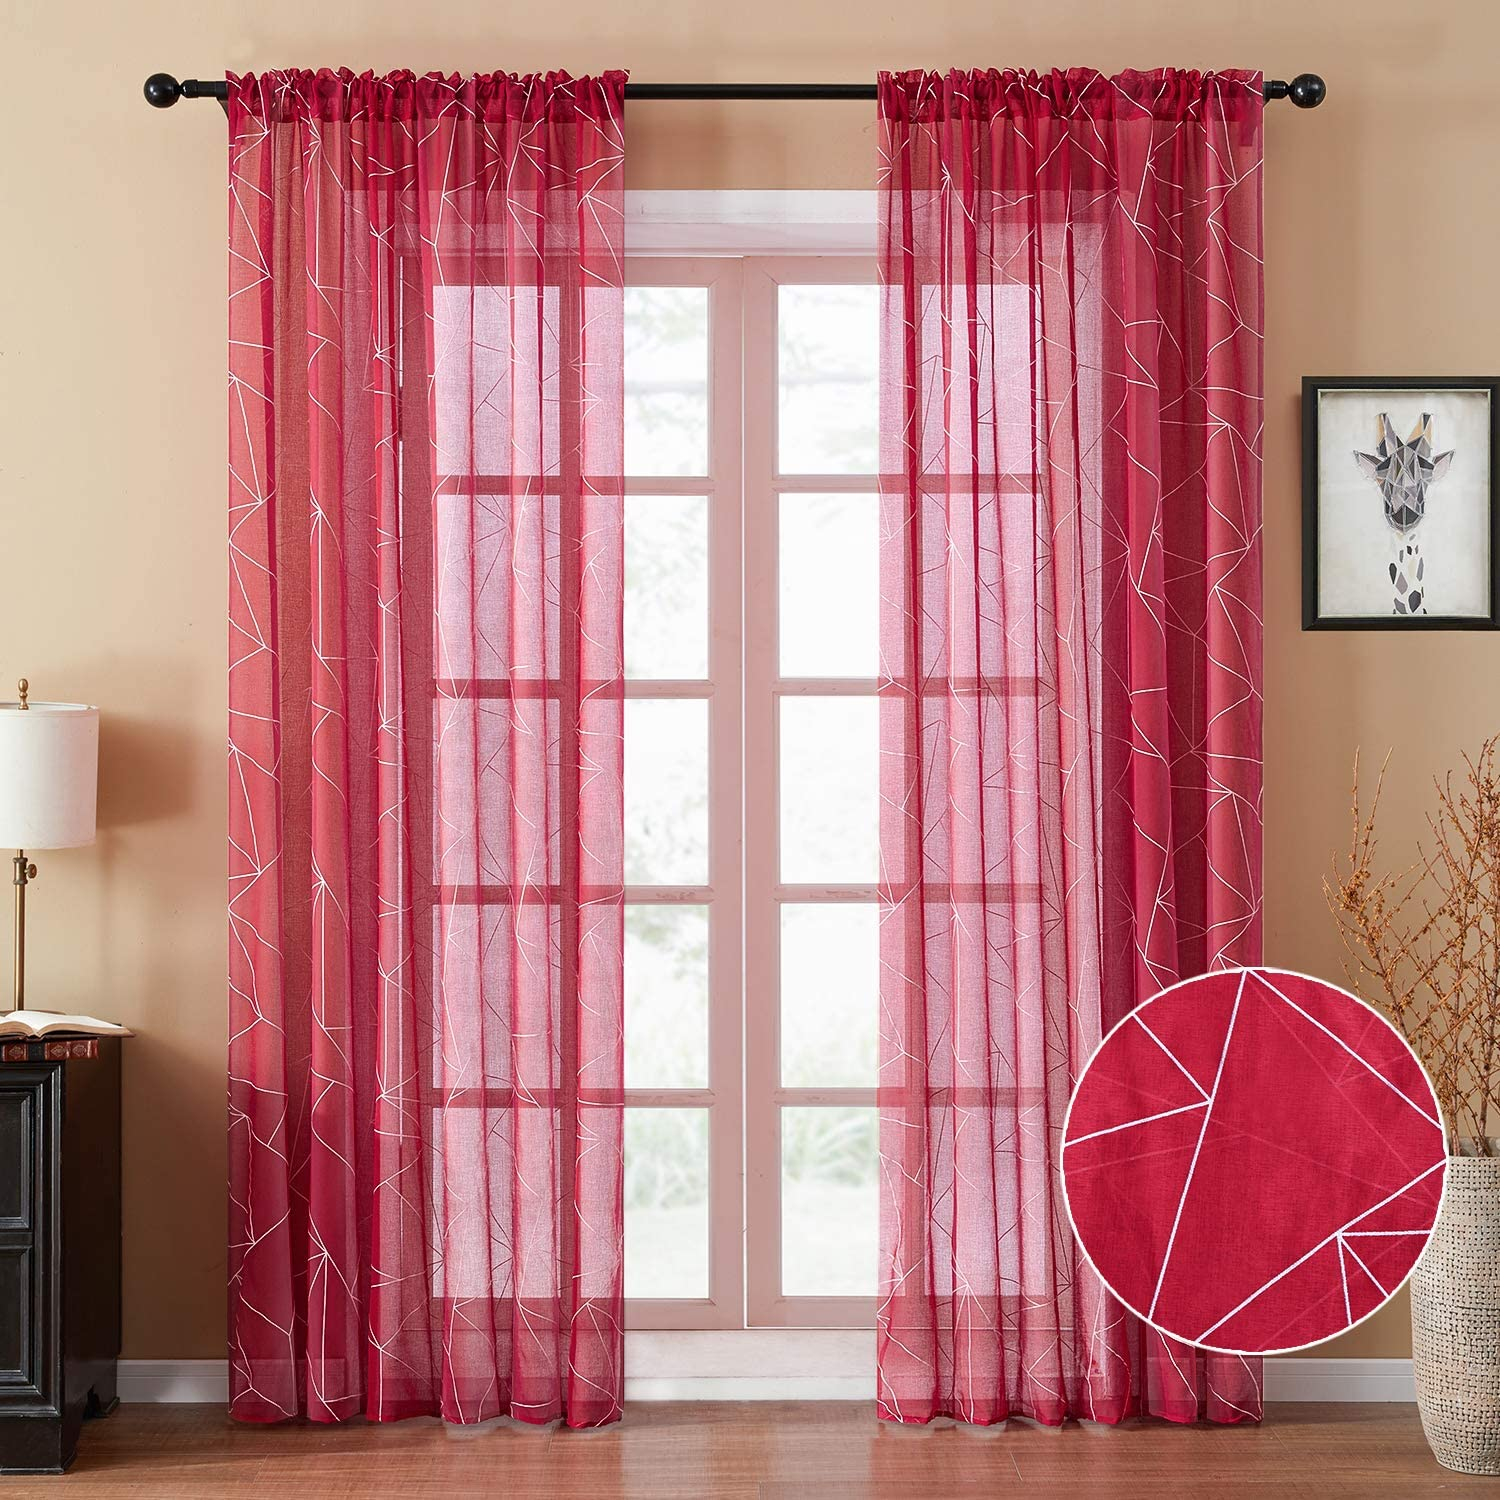 YOKISTG Faux Linen Sheer Curtains 84 Inches Long Rod Pocket Printed Geometry Window Curtains for Bedroom Living Room, Red, 2 Panels